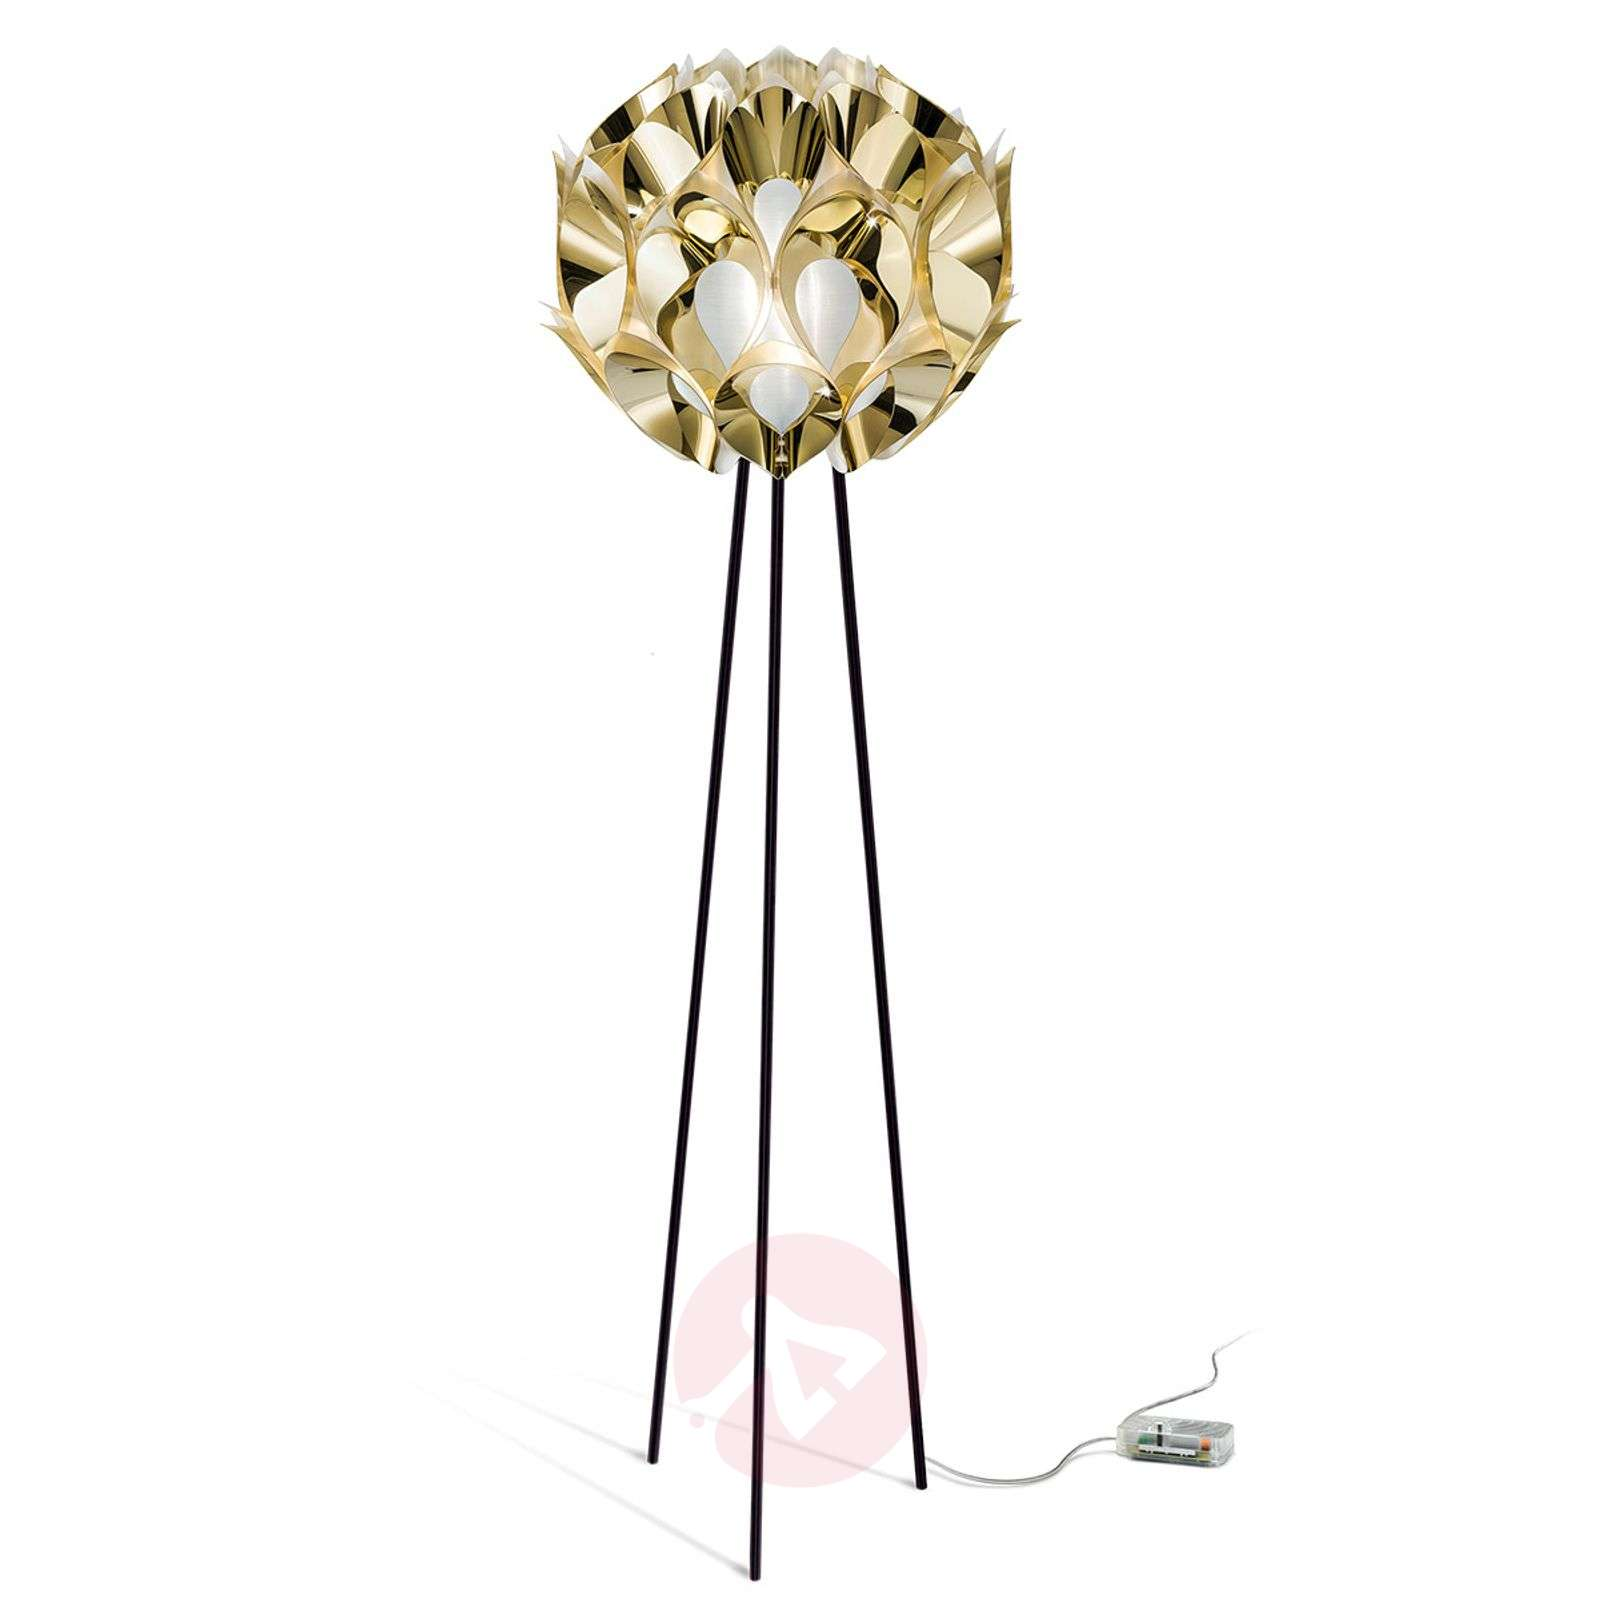 Czarująca lampa stojąca FLORA, złota-8503237-01